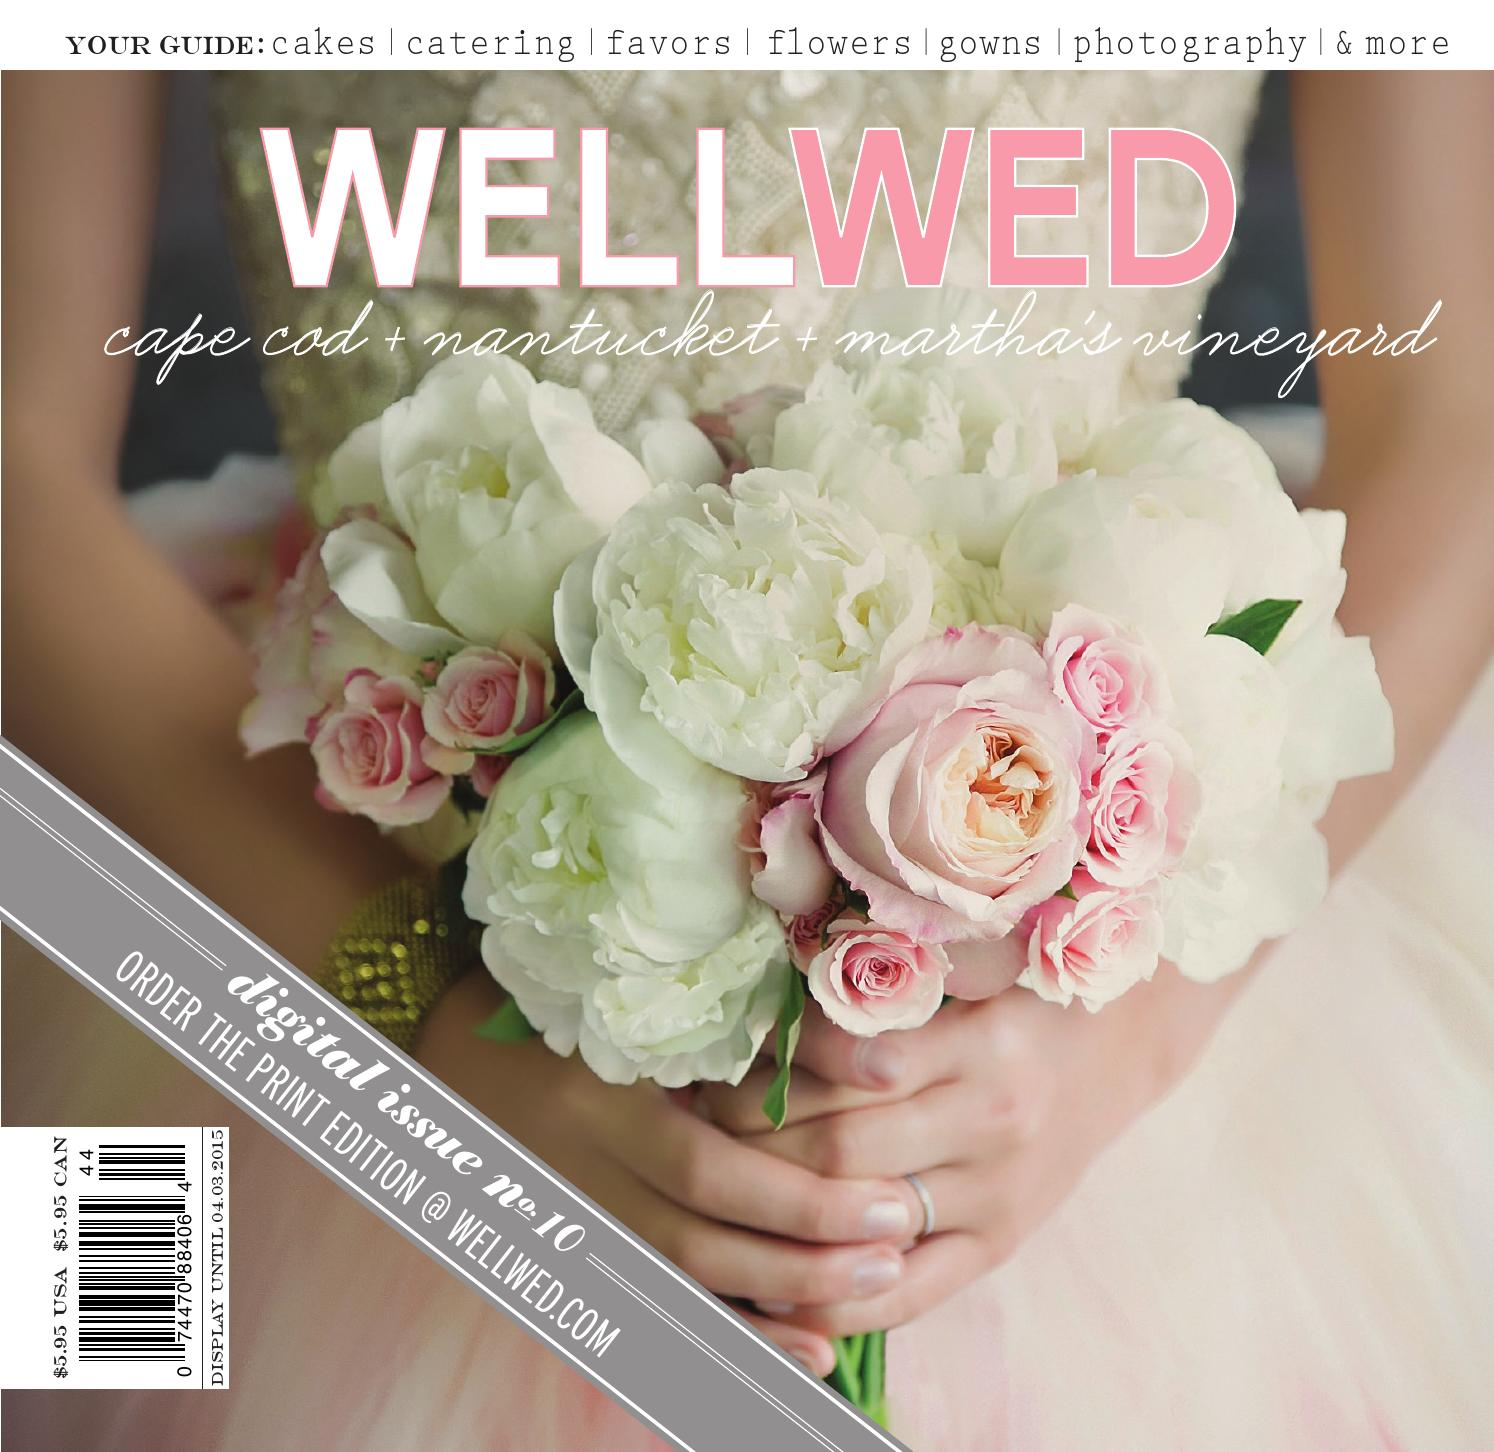 Wellwed Cape Cod Nantucket Marthas Vineyard Issue No10 By Martha Ivory Top Leux Studio L Vermont Vows And Magazines Issuu